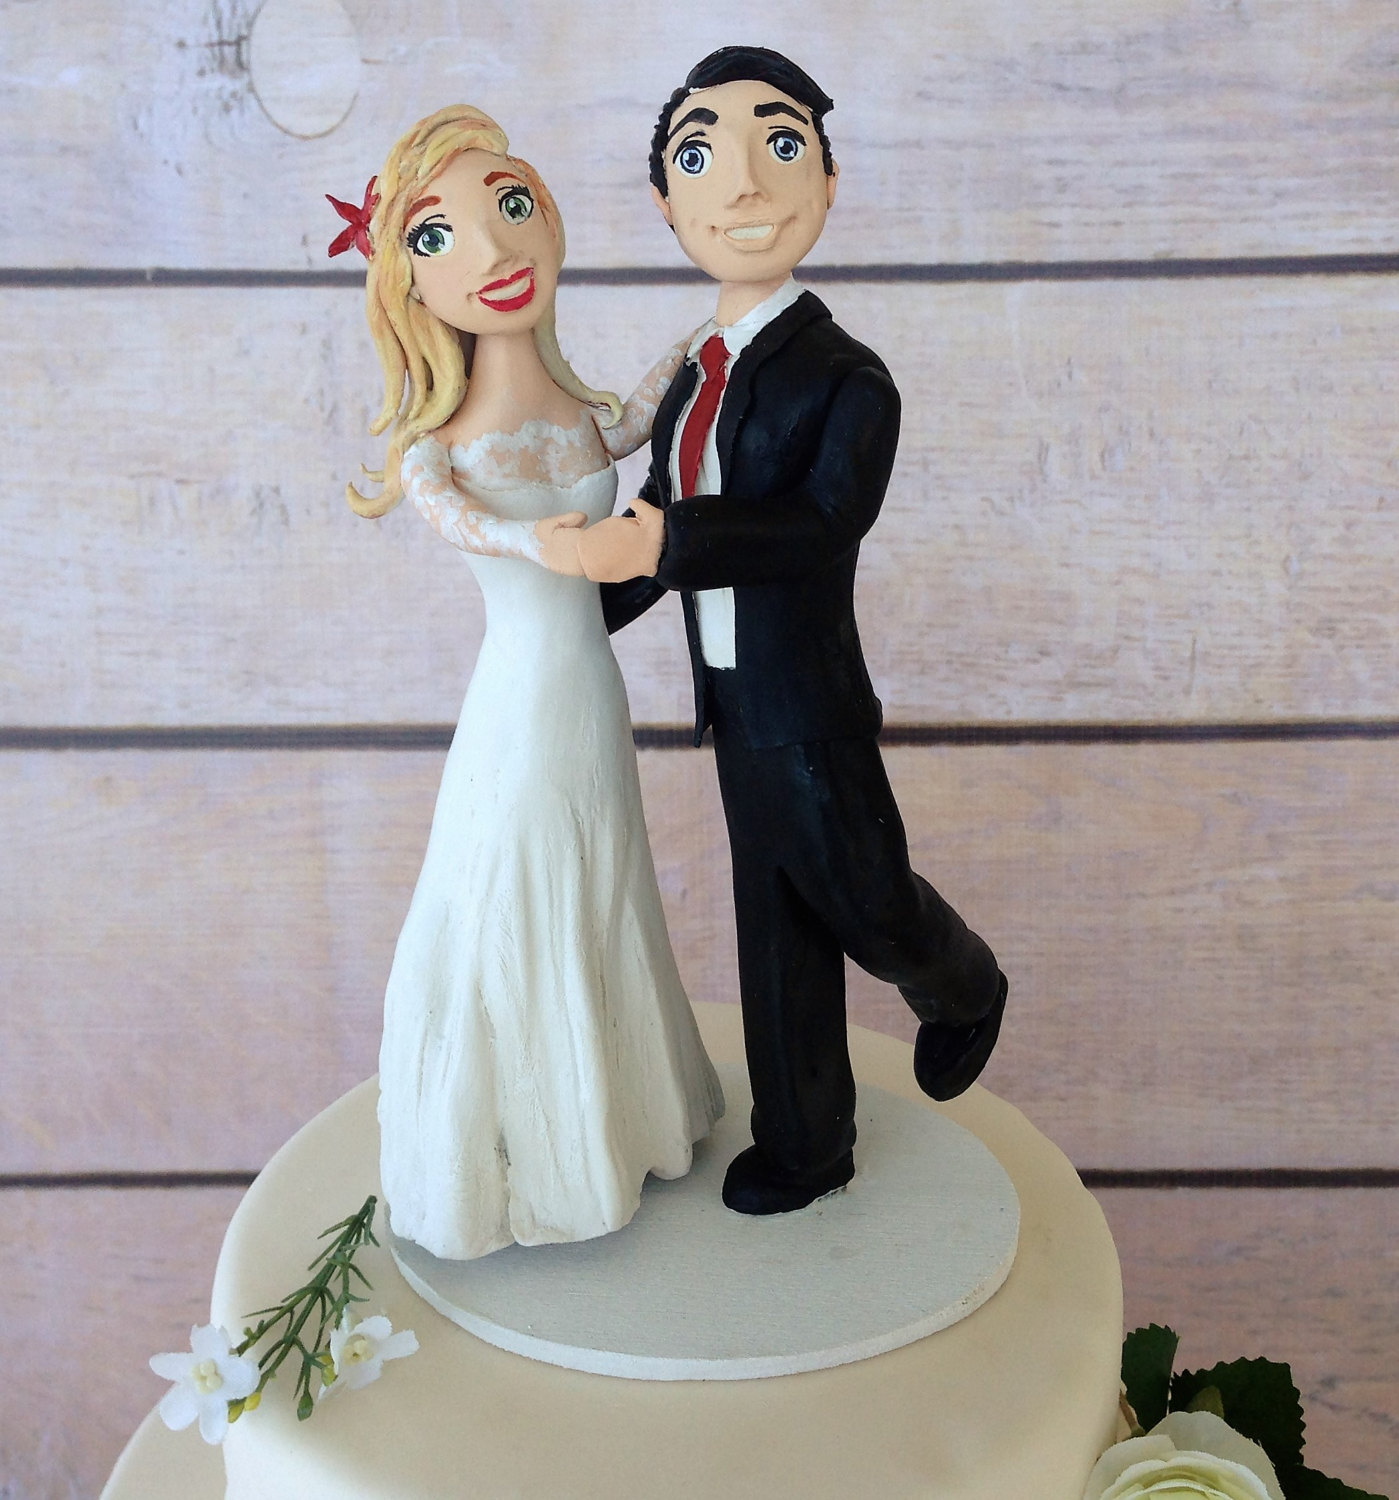 dancing bride and groom cake topper | https://emmalinebride.com/wedding/dancing-bride-and-groom-cake-topper/